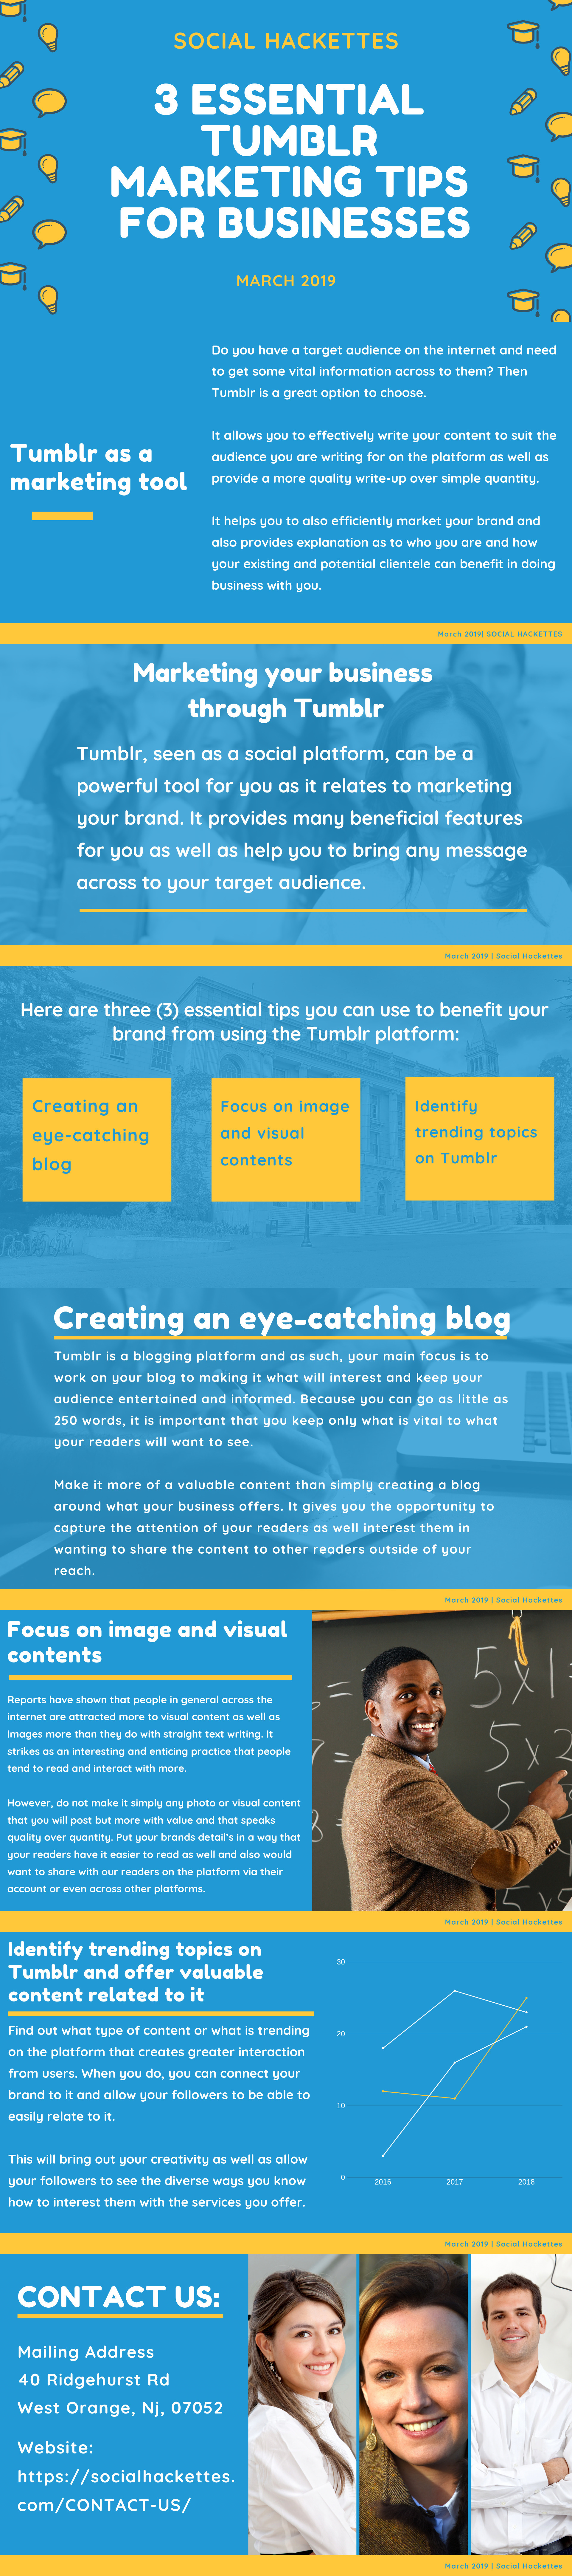 3 Essential Tumblr Marketing Tips for Businesses